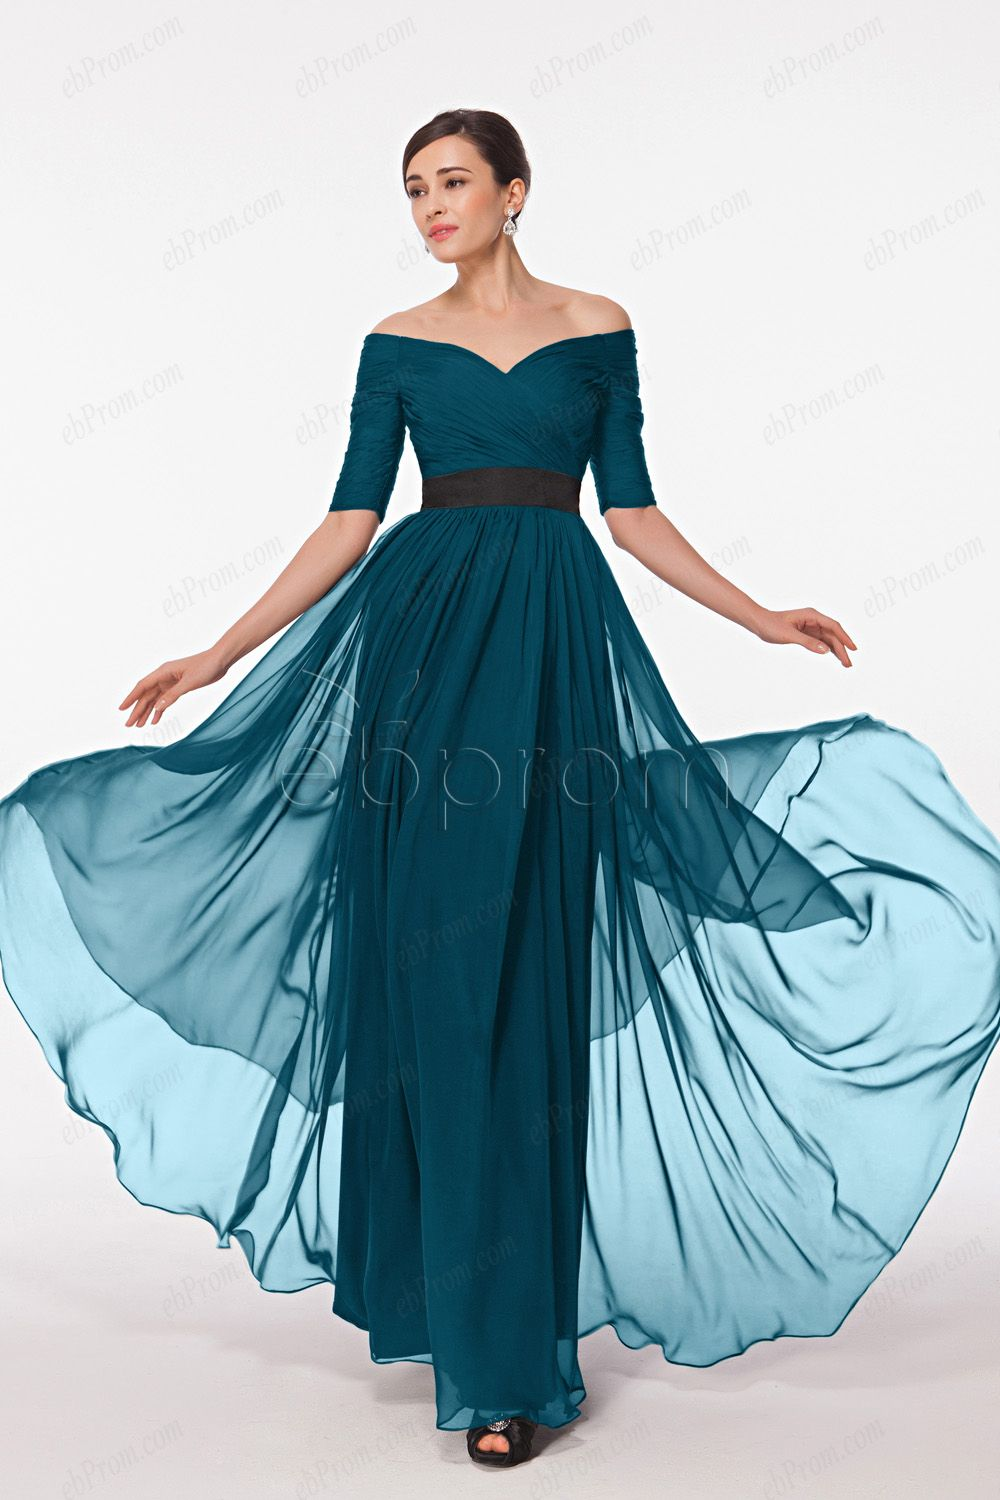 Teal off the shoulder evening dress with sleeves | Blue formal ...